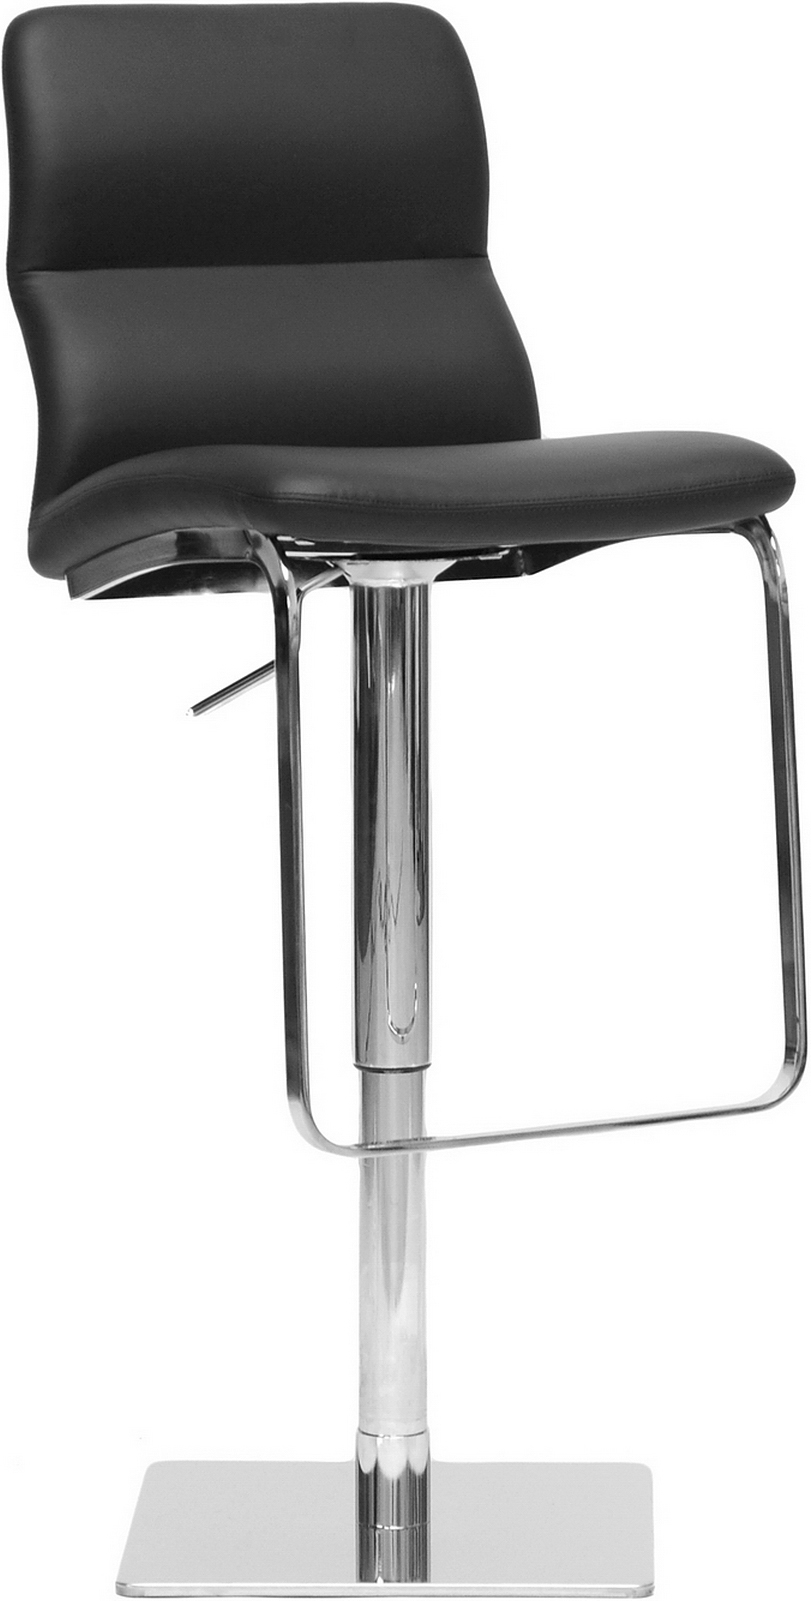 the helsinki bar stool in black